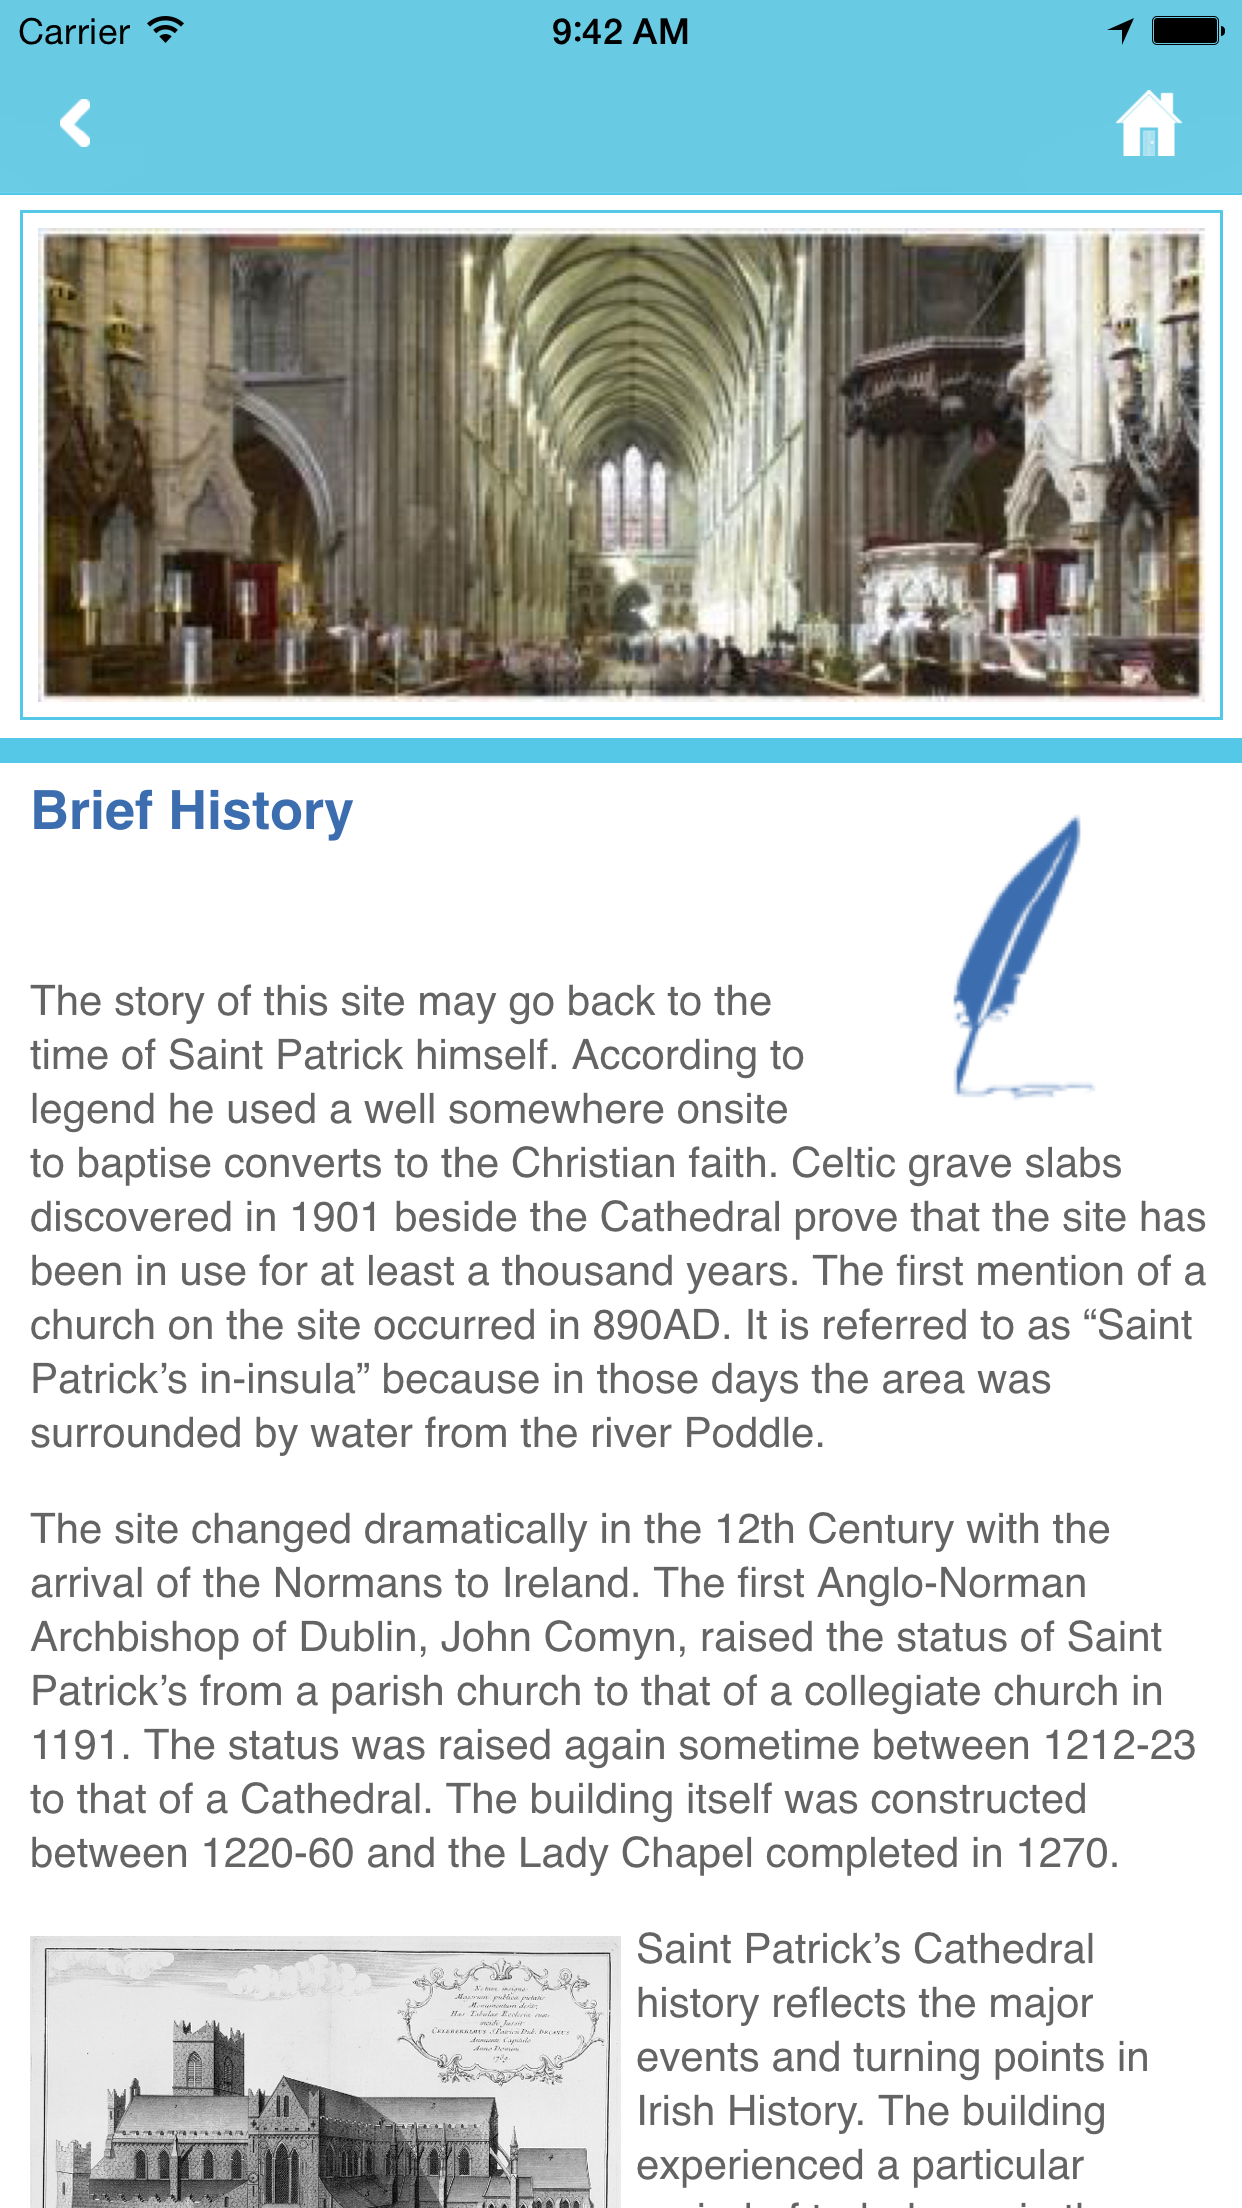 St. Patrick's Cathedral Story